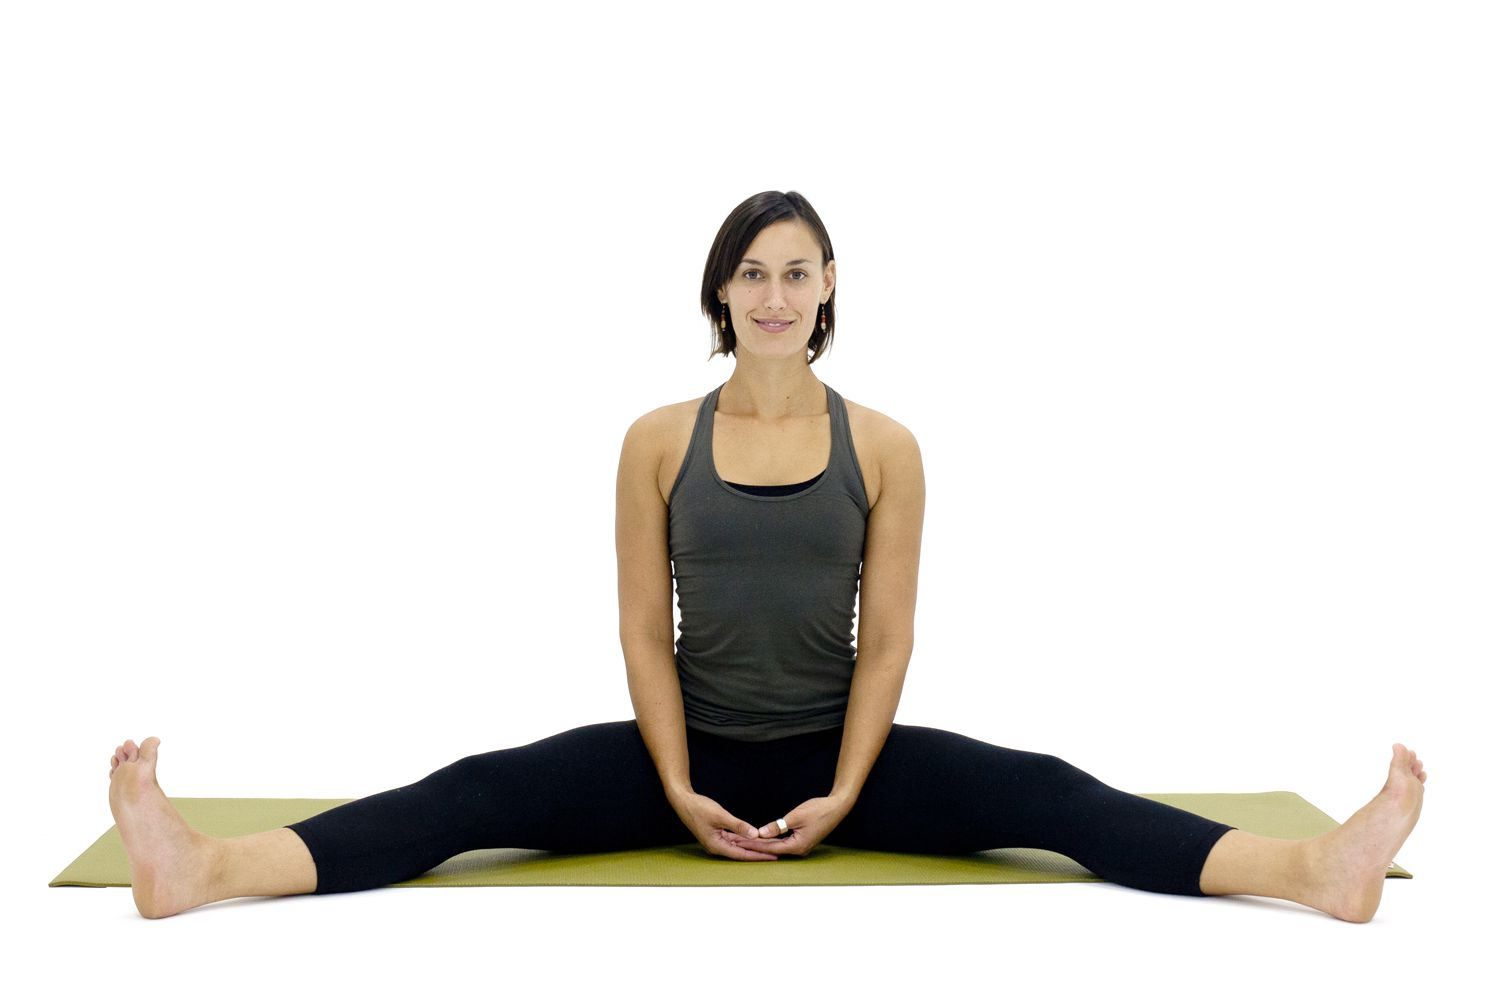 6 Yoga Poses For Your Period To Help Relieve Cramps